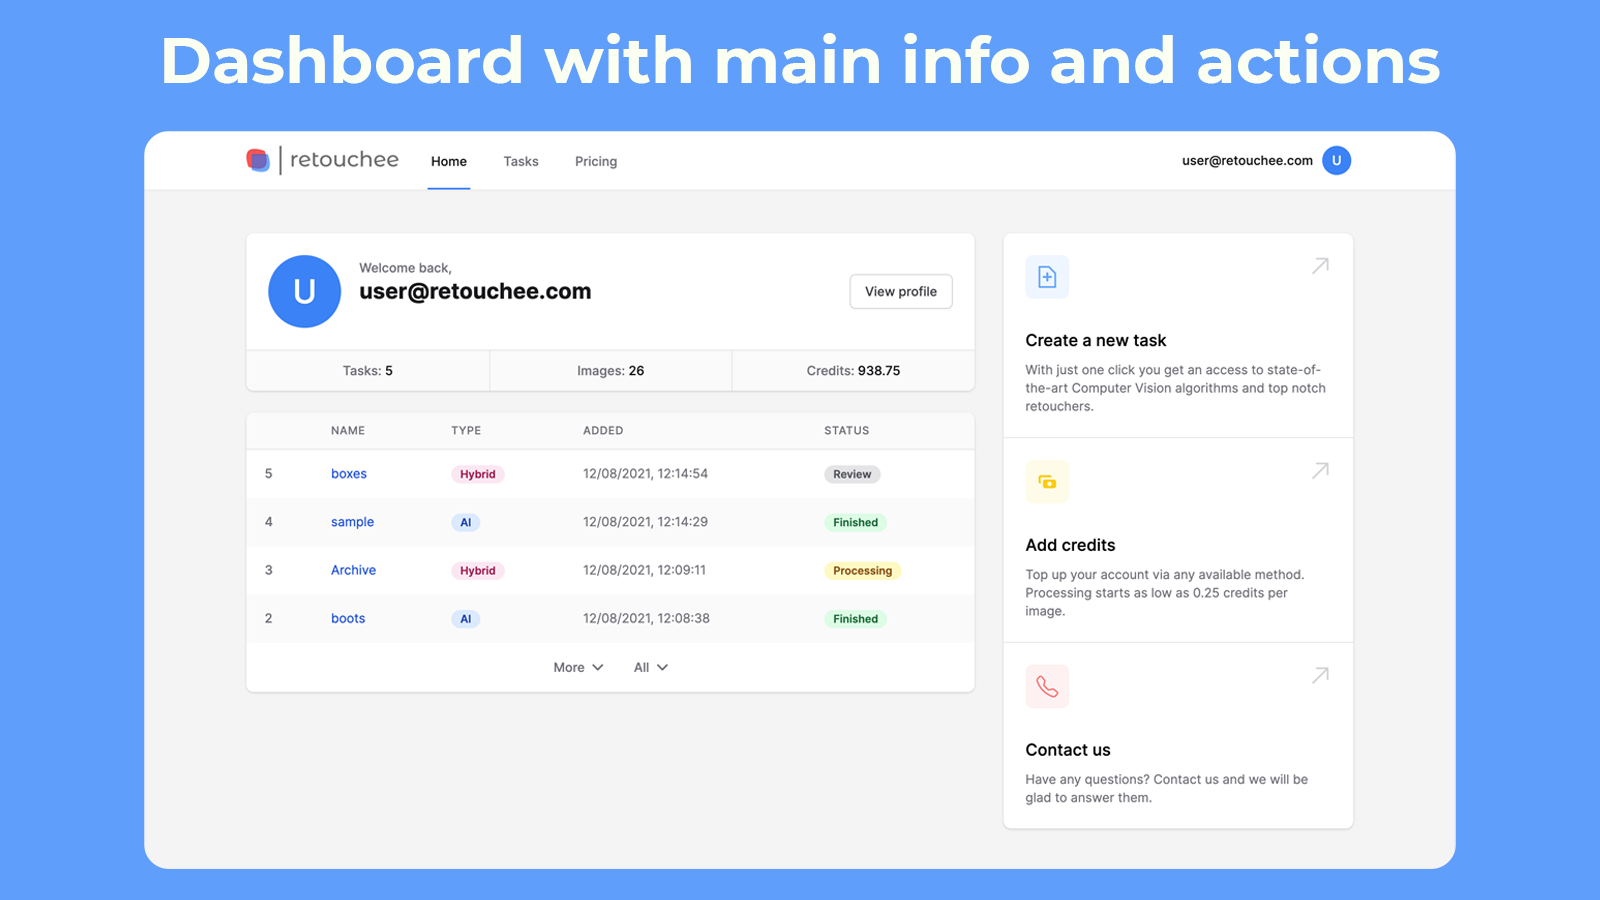 Dashboard with main info and actions